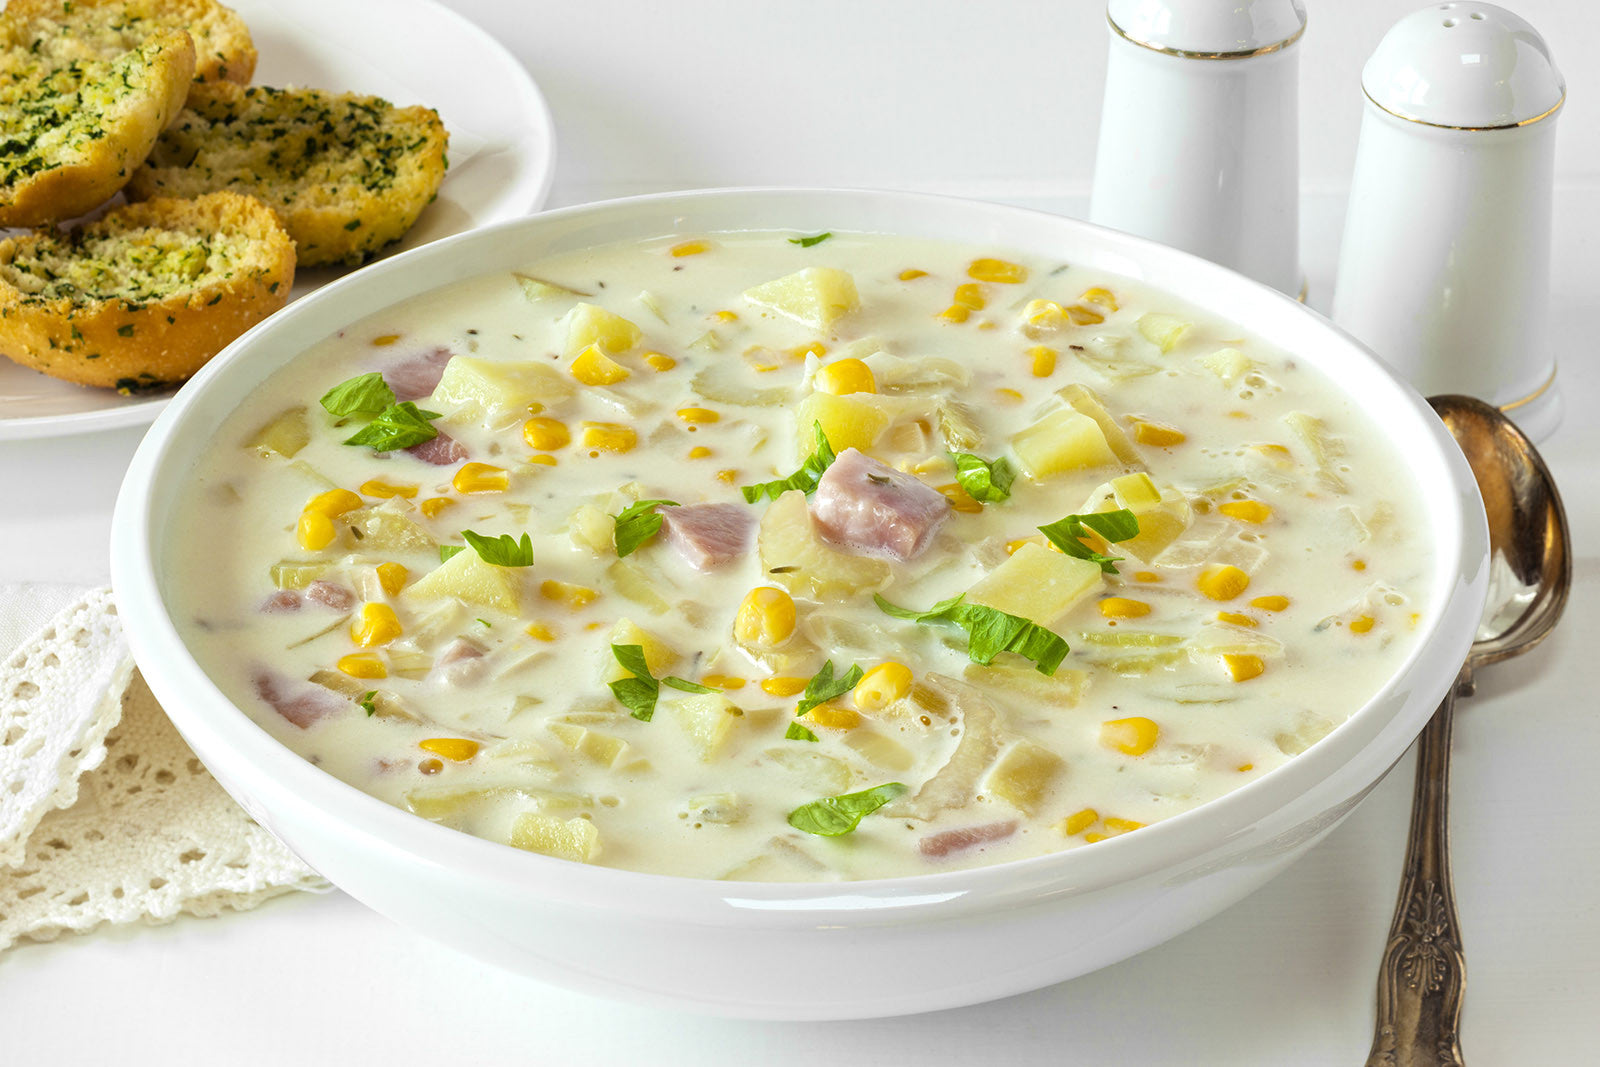 2-Hour Clay Slow-cooker Ham and Potato Chowder Recipe